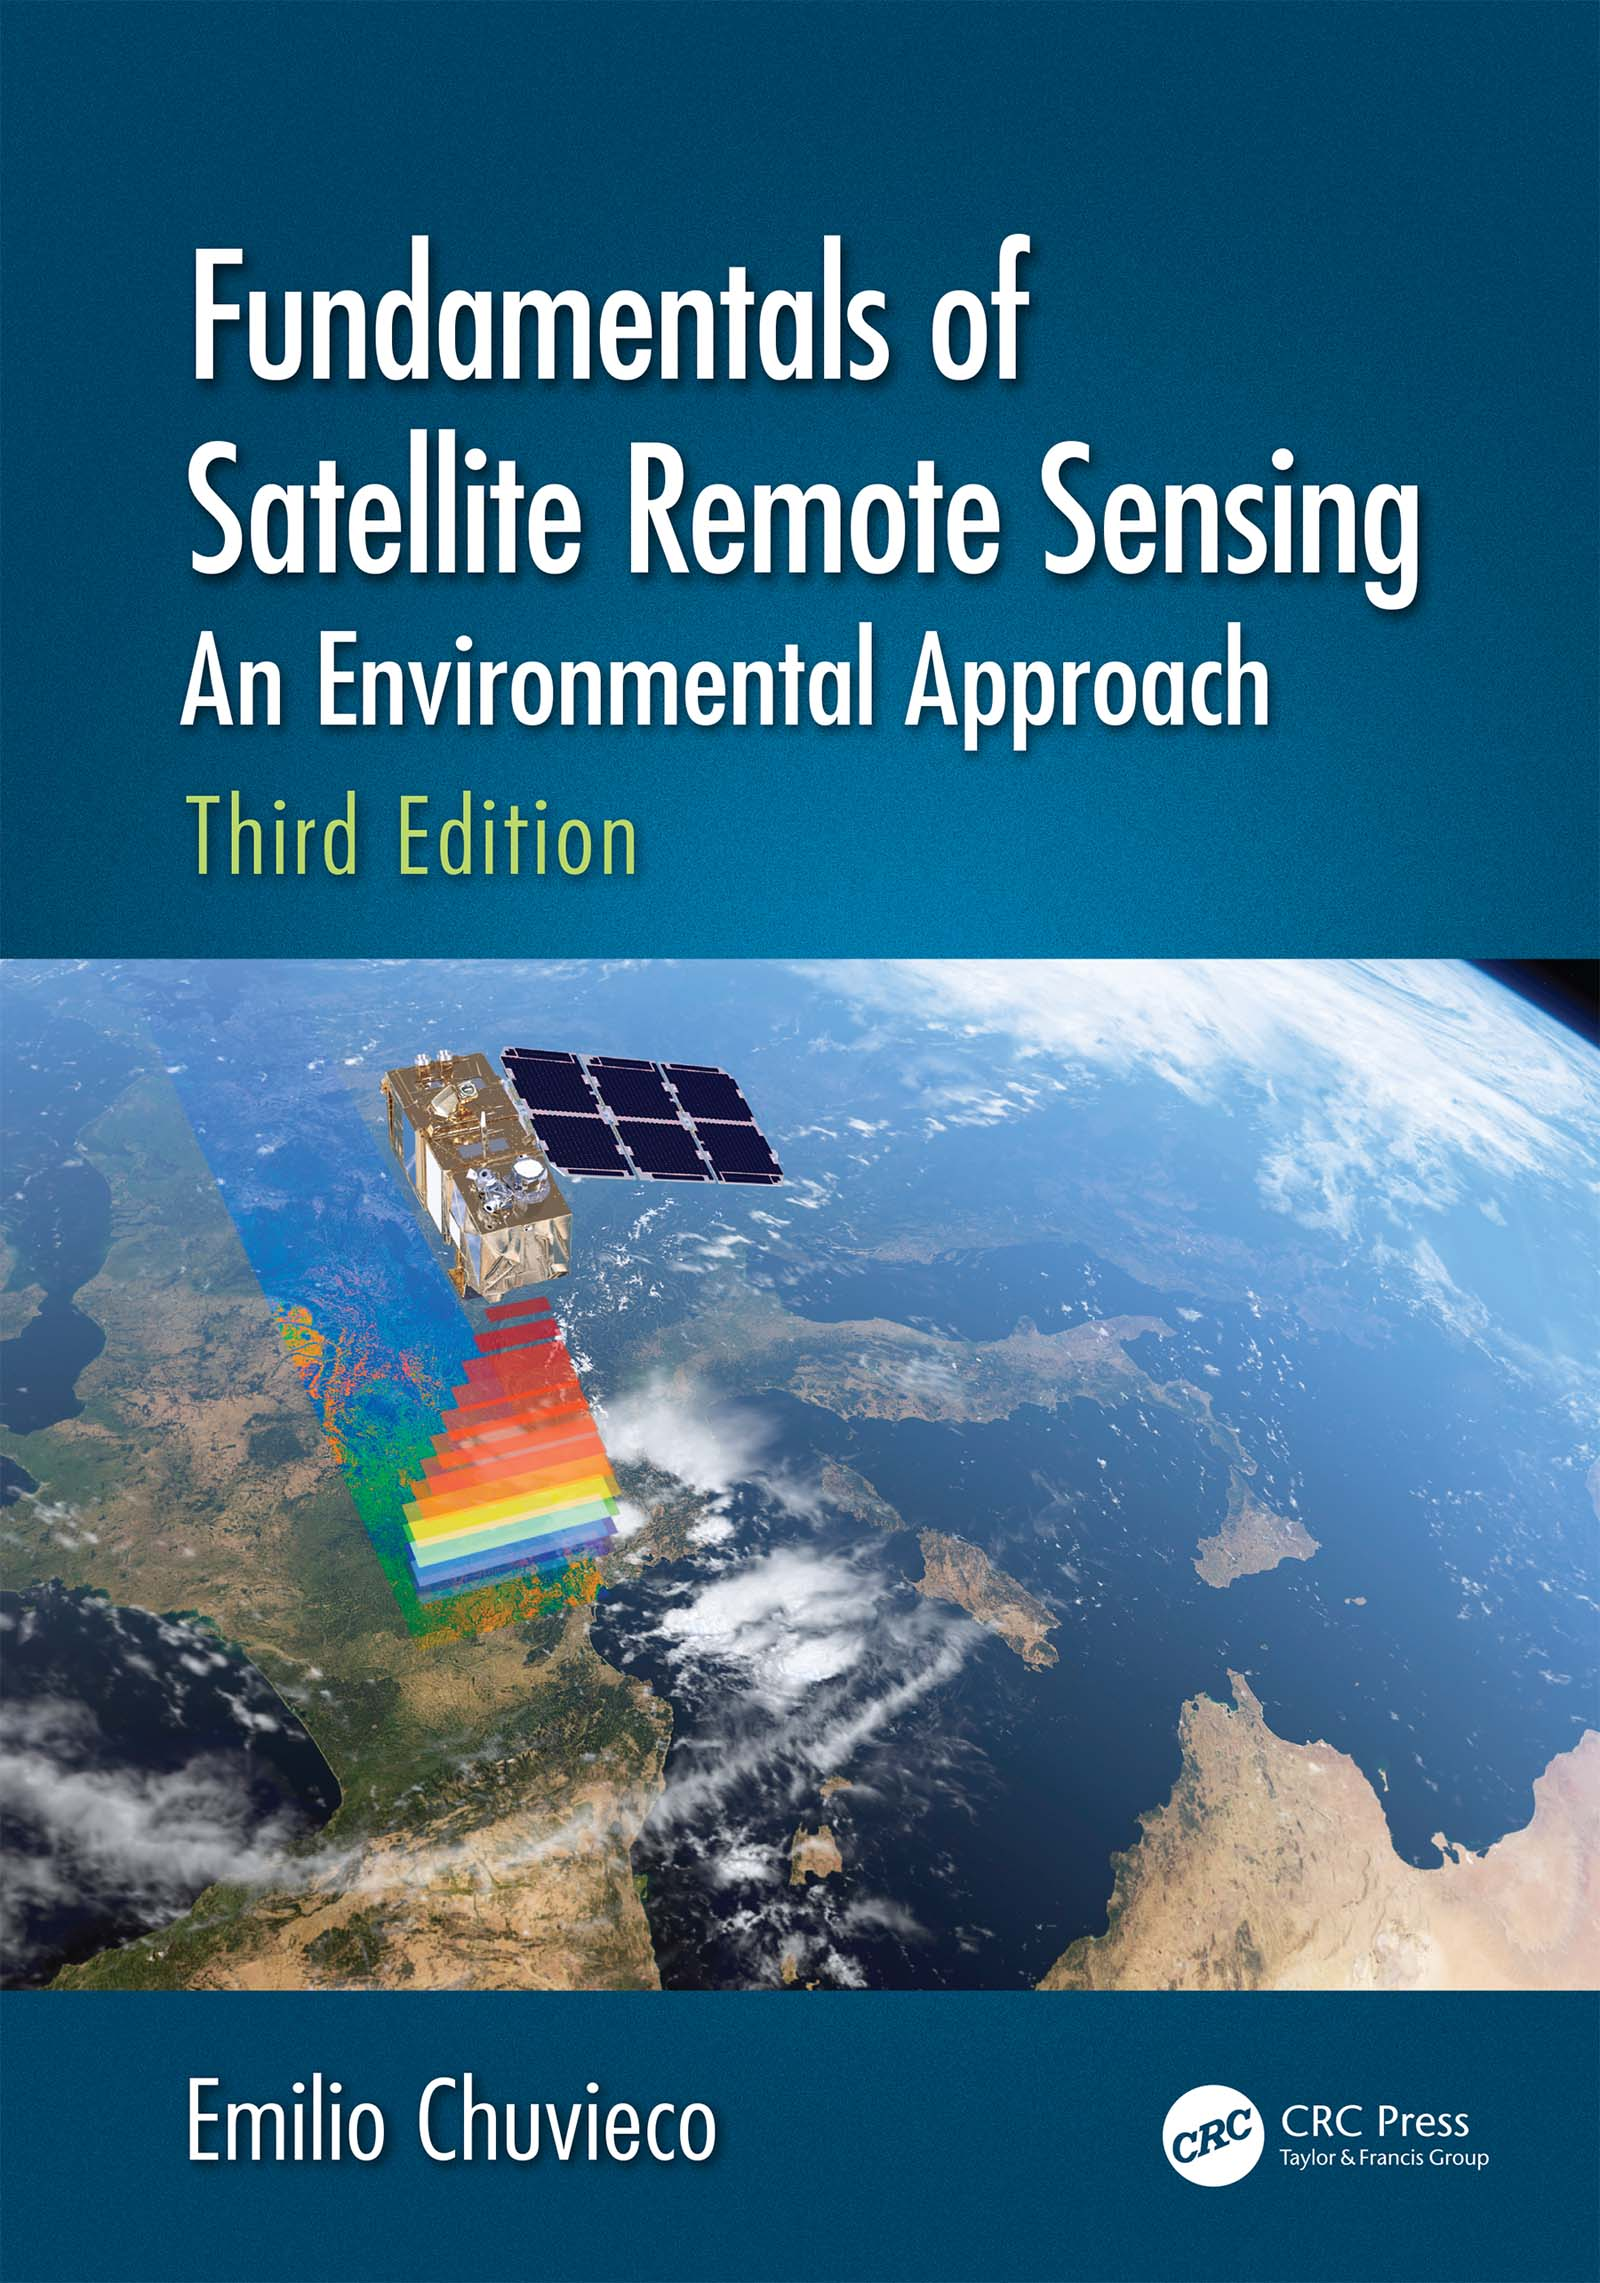 Fundamentals of Satellite Remote Sensing: An Environmental Approach, Third Edition book cover